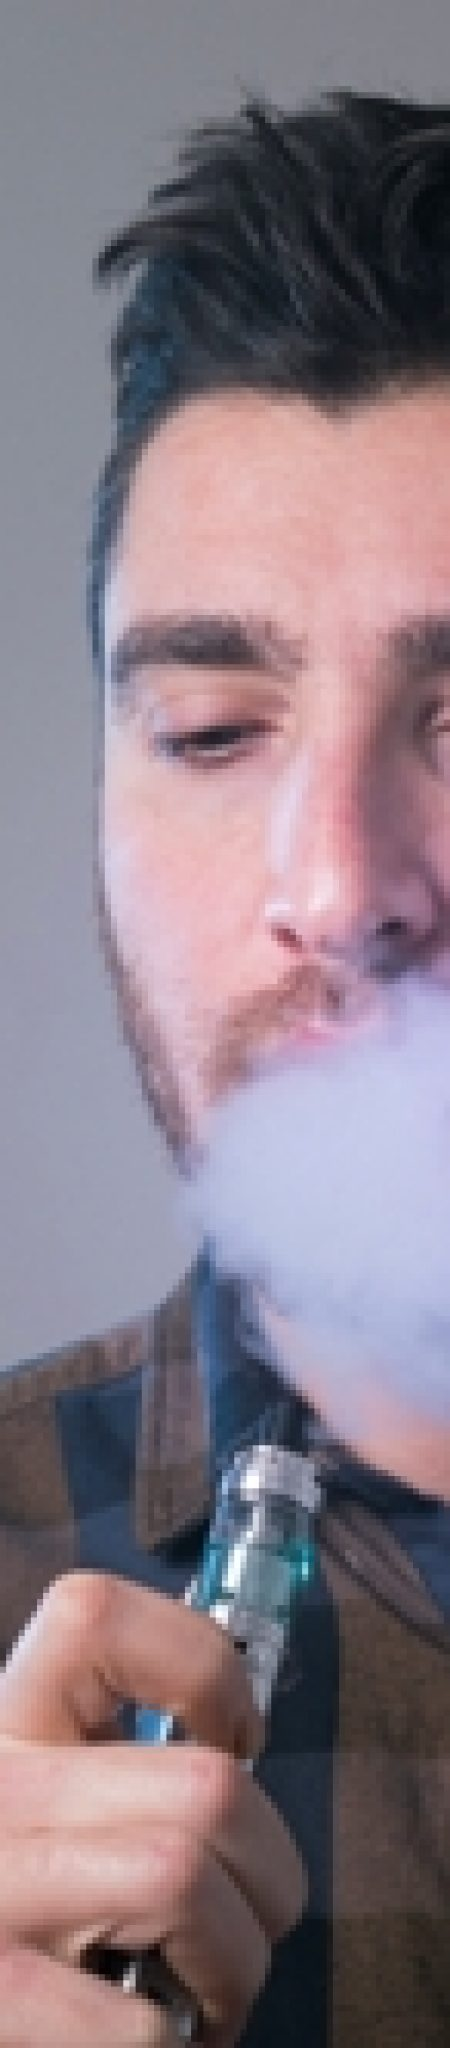 Man-vape-an-electronic-cigarette-with-lots-of-smoke E-cigarettes and Oral Health